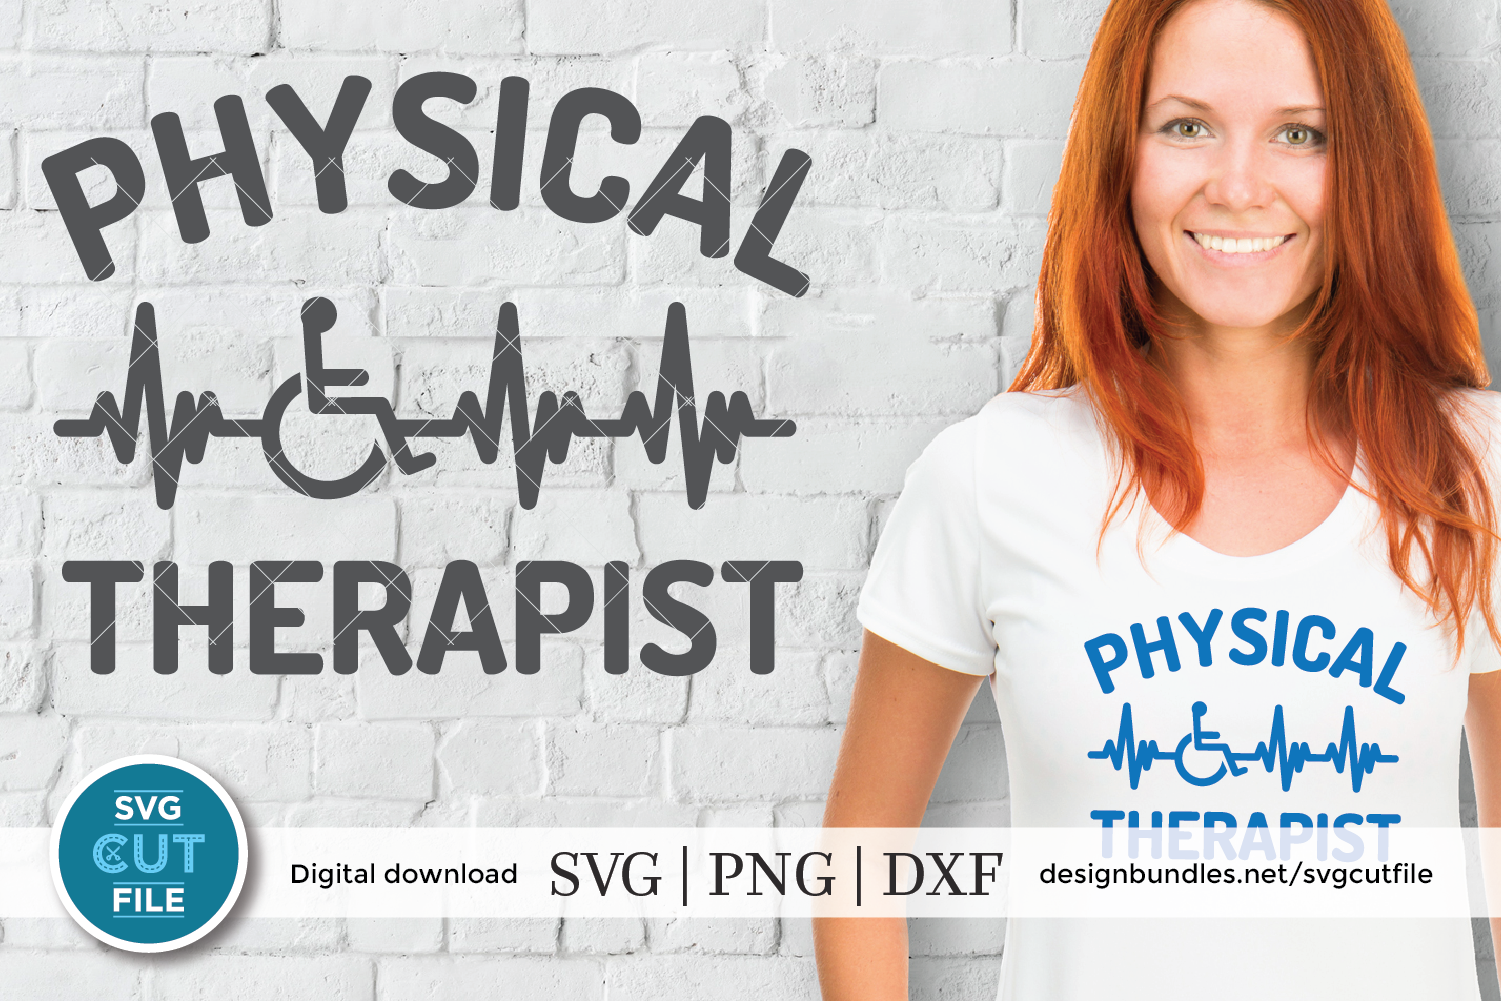 Physical therapist svg, physical therapy svg, ekg svg dxf example image 1